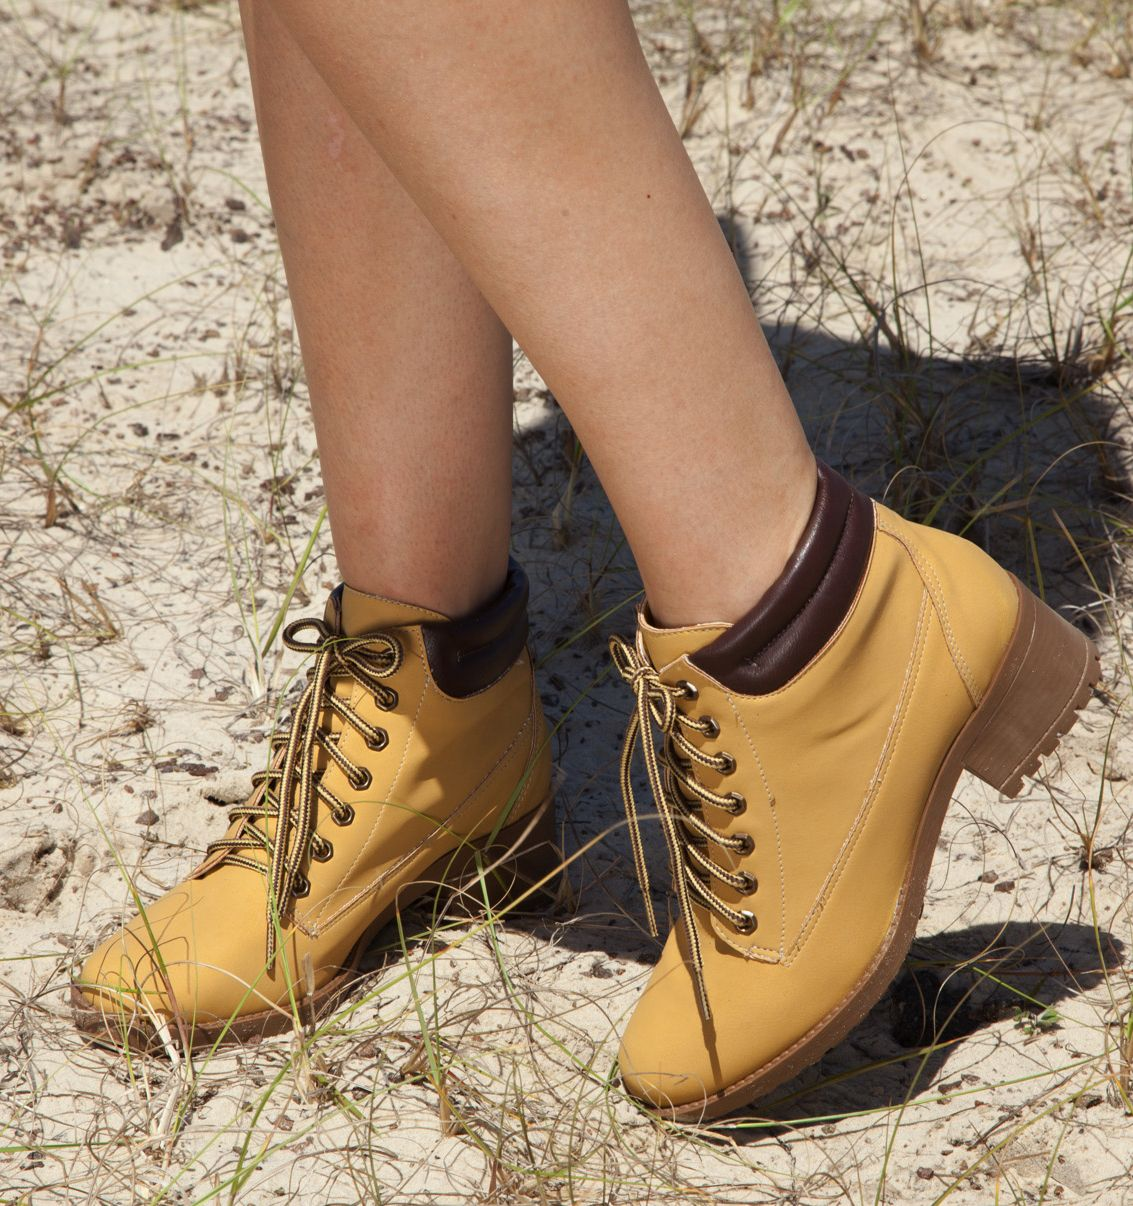 2bfb8c2b59c38 yellow boots - winter shoes - coturno amarelo - Inverno 2015 - Ref. 15-303